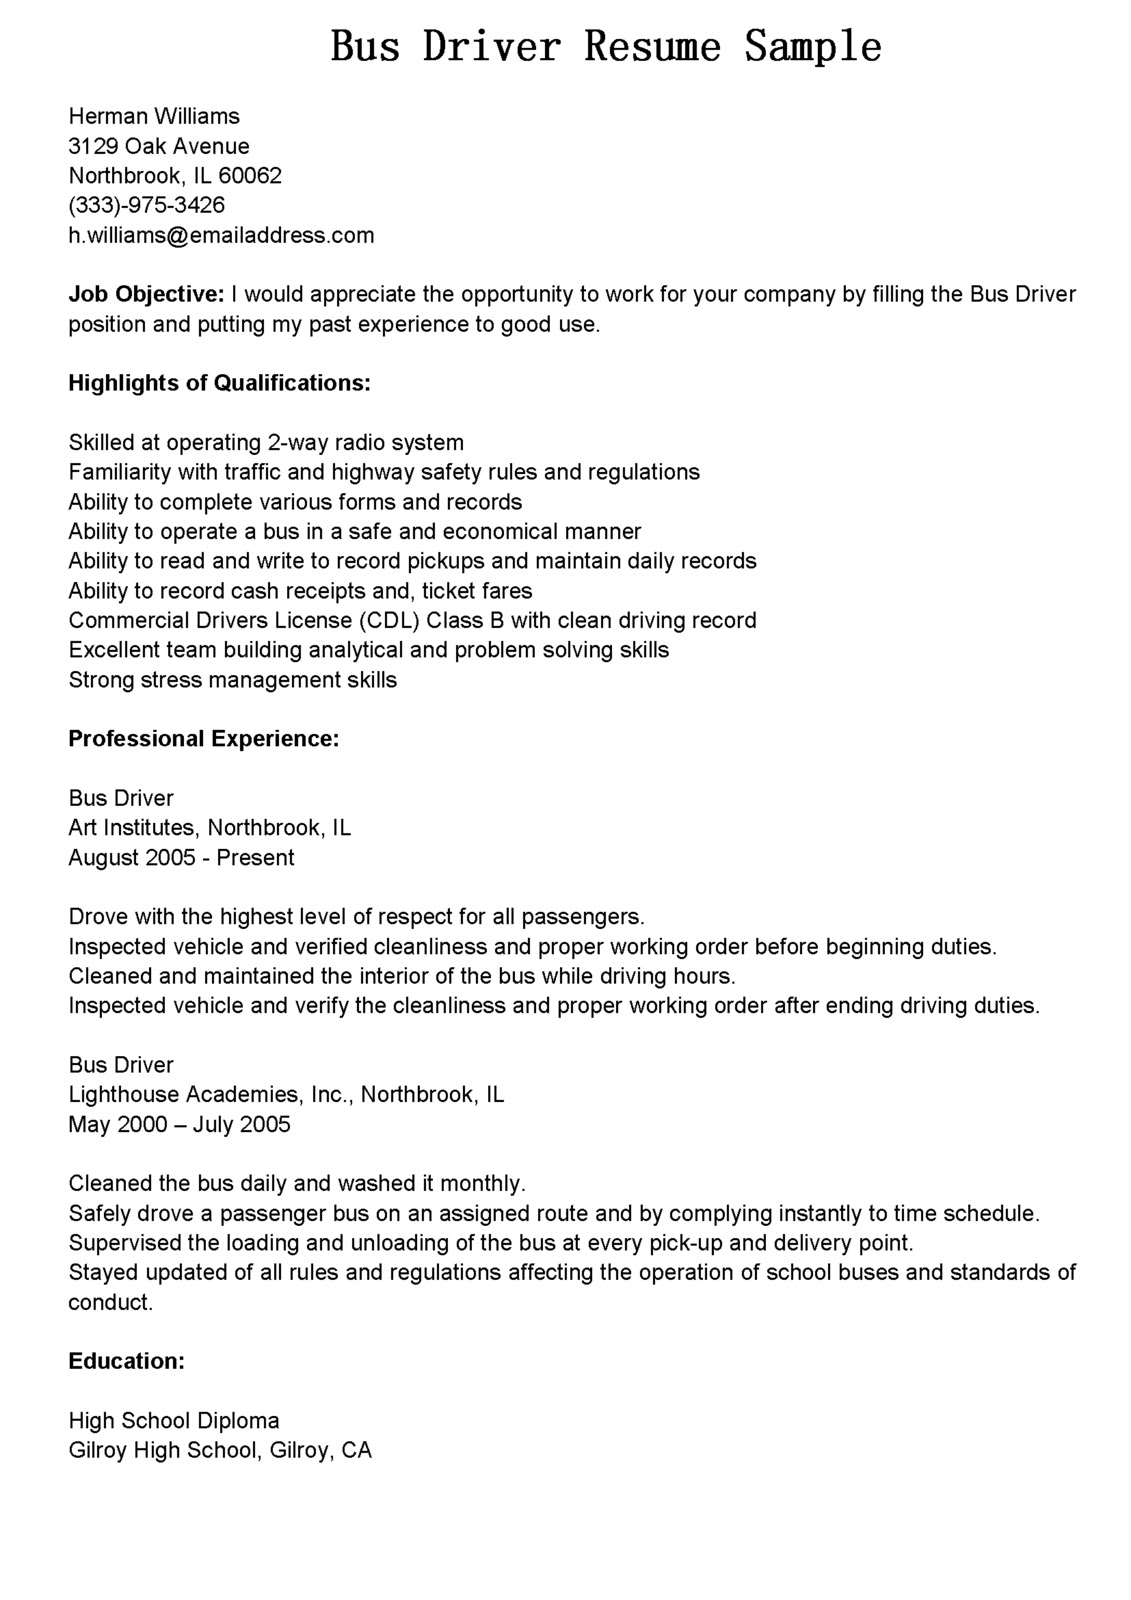 Admissions Coordinator Job Description Resume Emailing